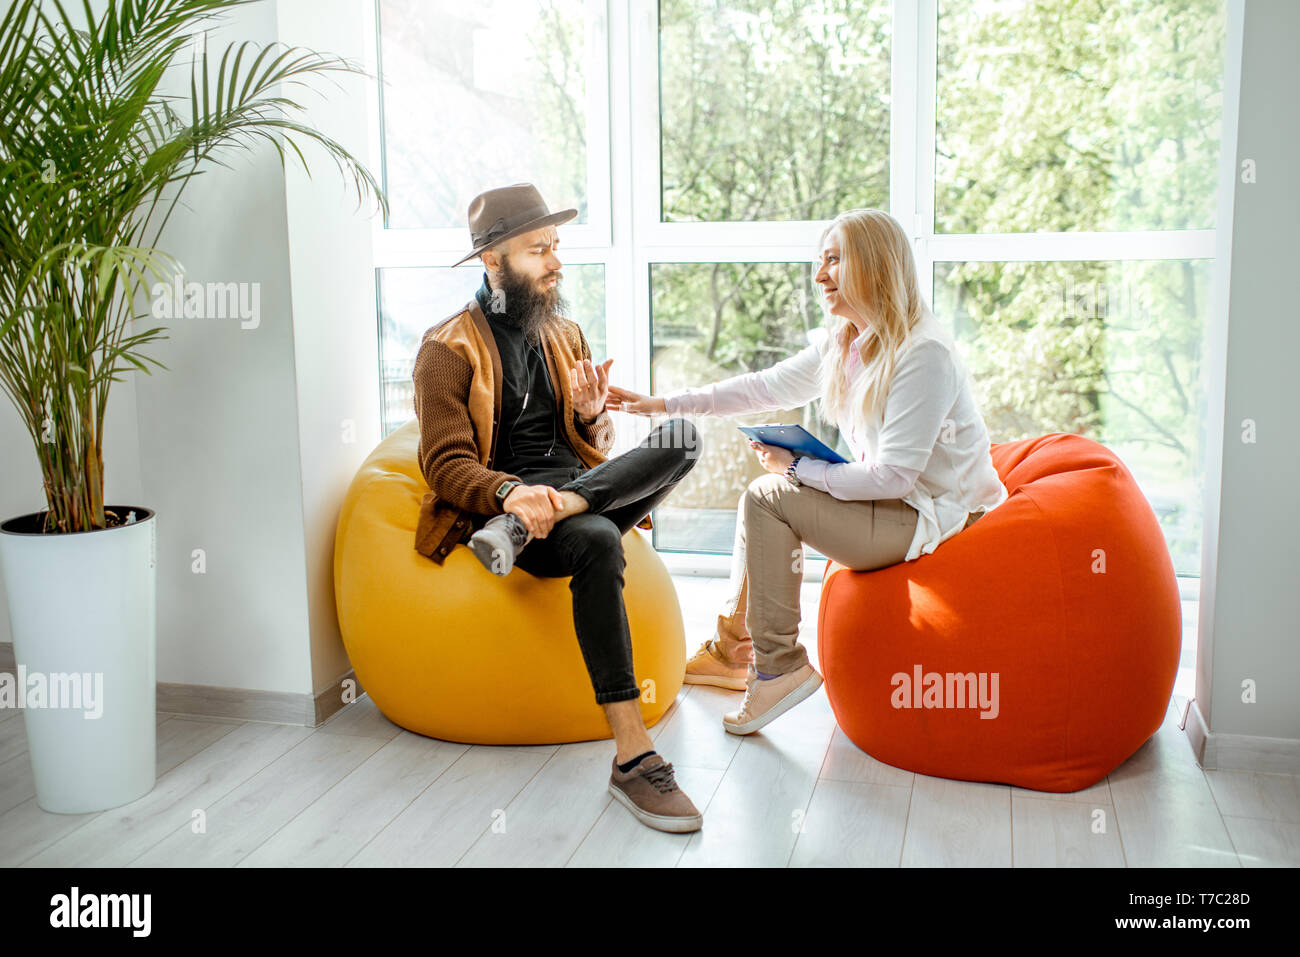 Stylish Man With Senior Female Psychologist Or Mental Coach Sitting On The  Comfortable Chairs During The Psychological Counseling In The Office